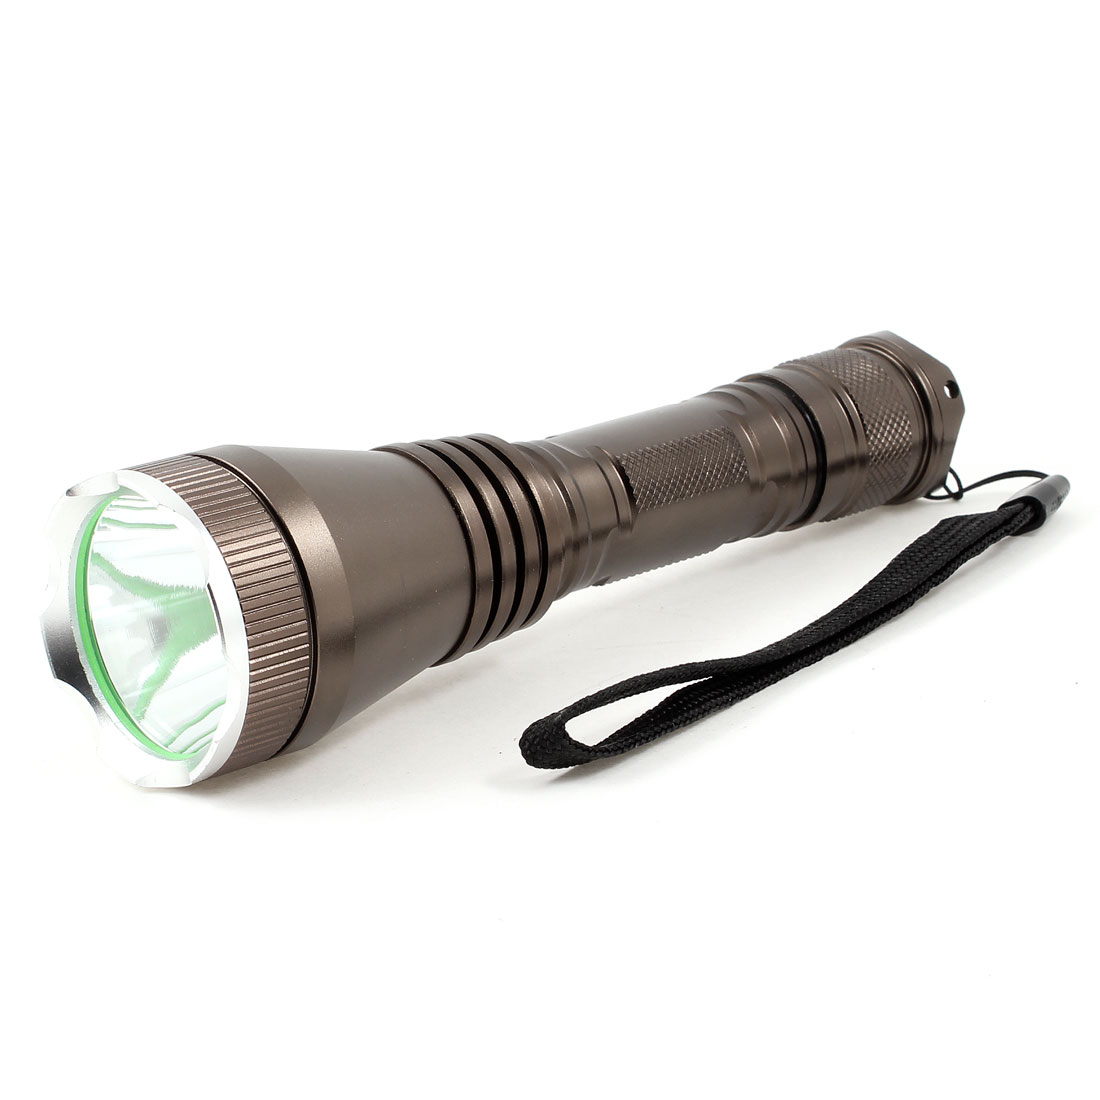 "Coffee Color Handhold 3 Modes 850 Lumens White LED Flashlight 6.3"" Long"